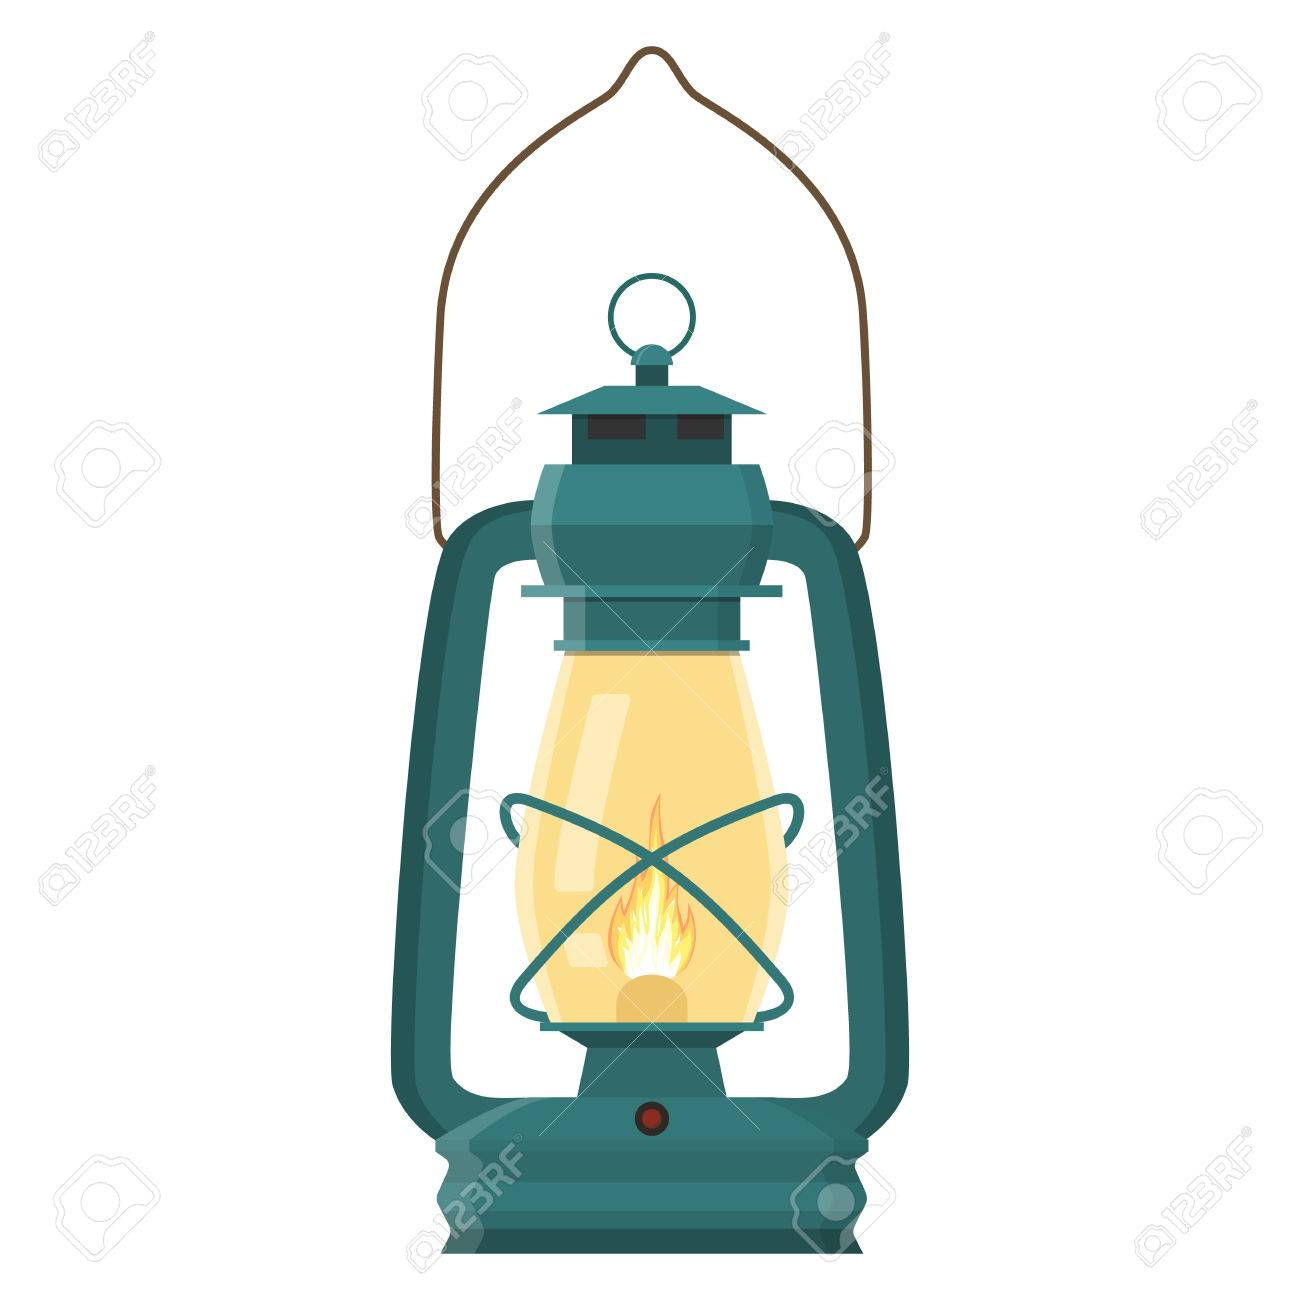 Vintage Camping Lantern Stock Vector